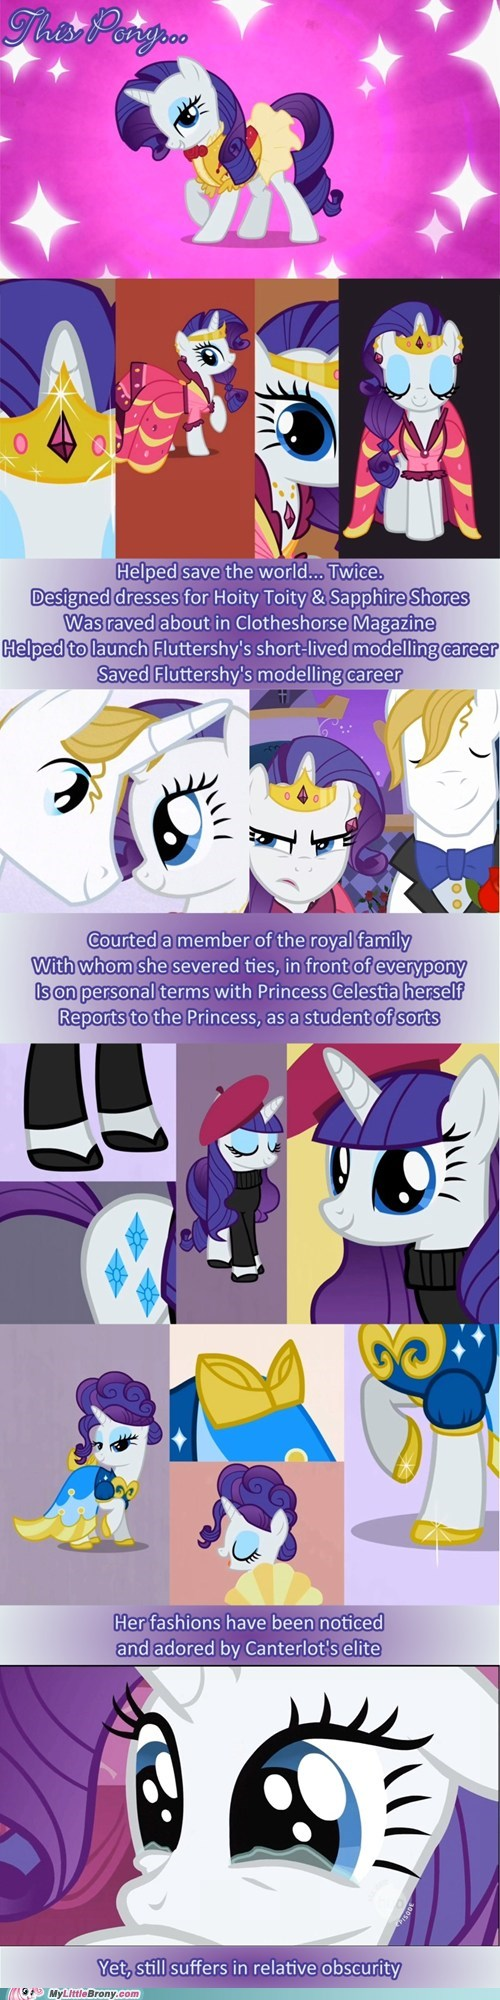 obscurity ponies pony rarity underrated - 5895688960